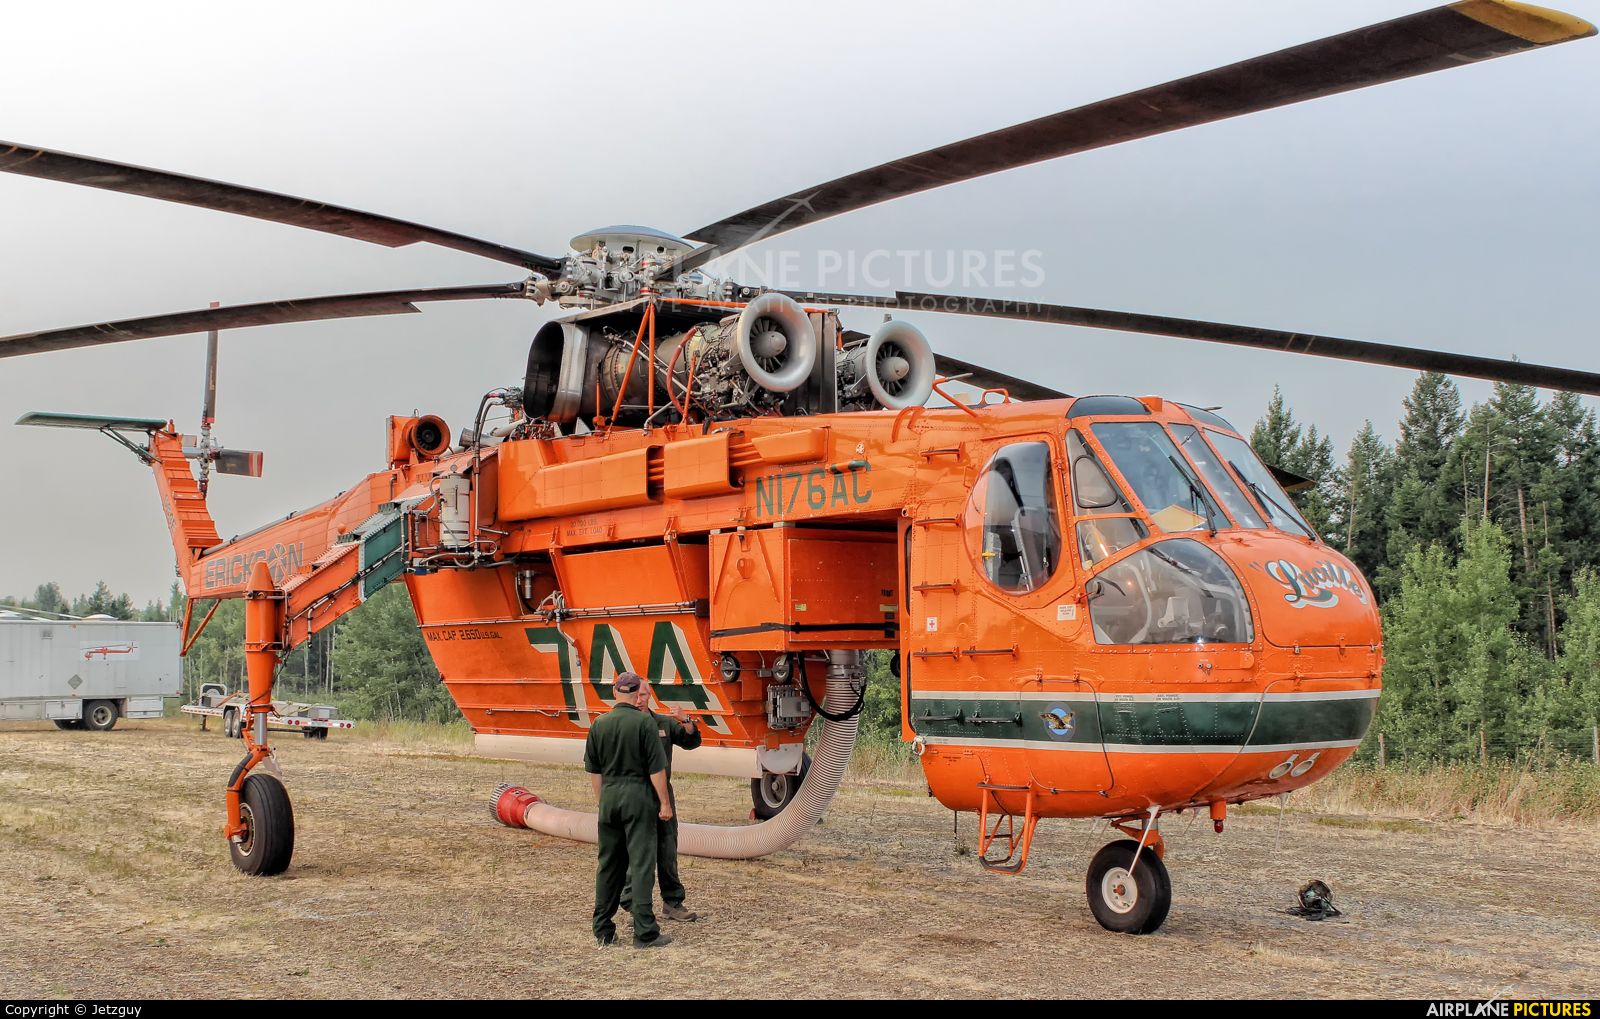 Erickson Air-Crane N176AC aircraft at 108 Mile Ranch, BC